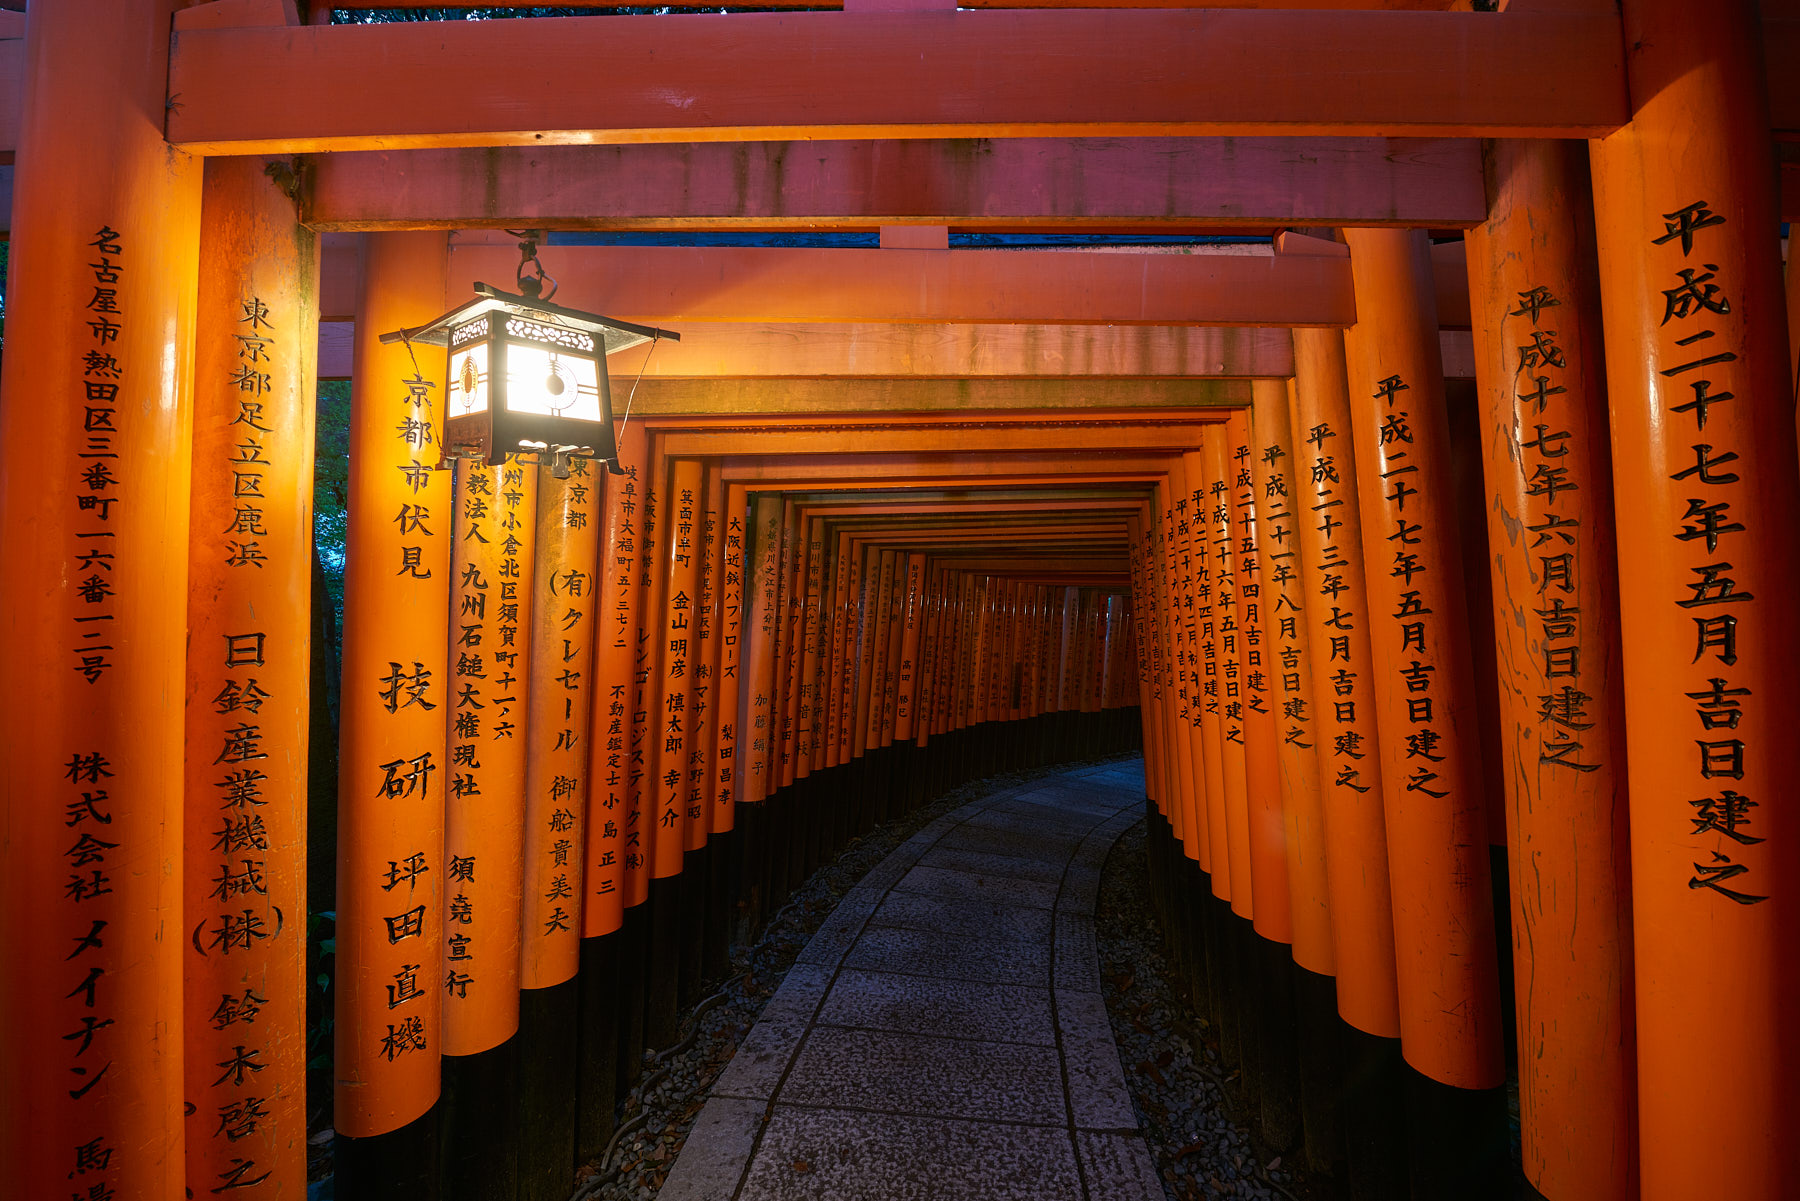 Looking down the gates of the spectacular fushimi inari shrine in Kyoto, Japan with a latern providing light before dawn